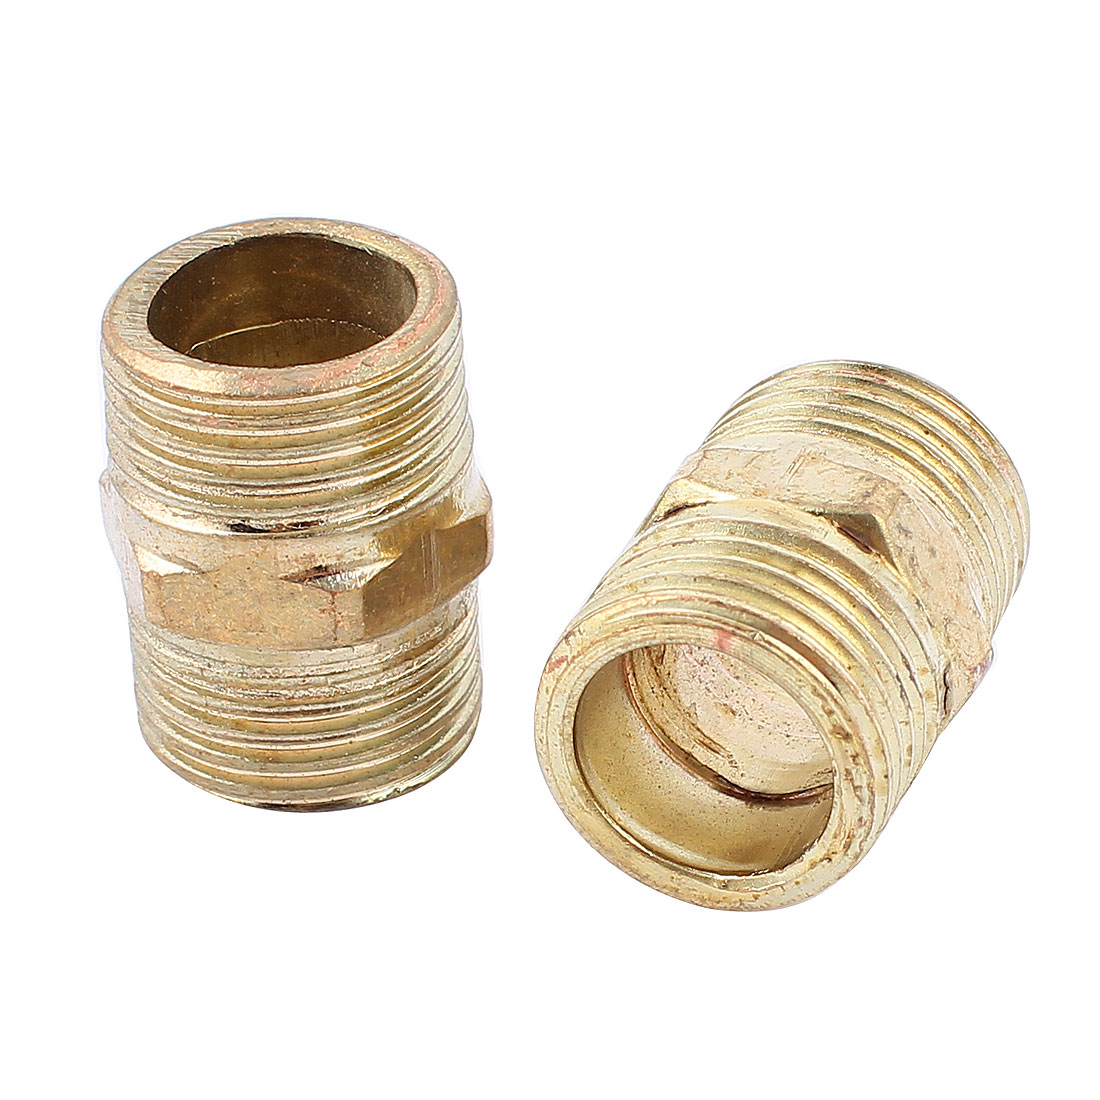 2Pcs Gold Tone Brass 1/2BSP x 1/2BSP Male Hex Nipple Connector Adapter 27mm Long